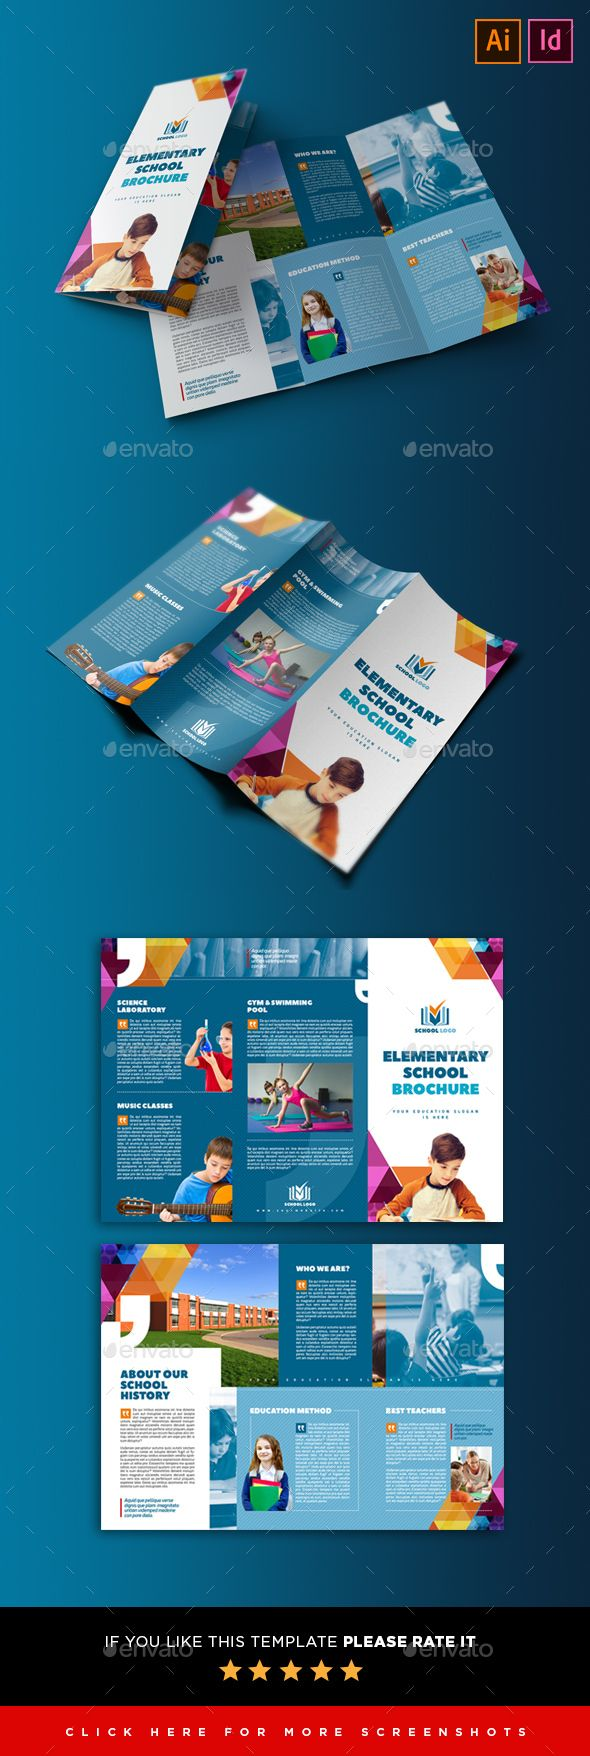 Elementary School 3 Fold Flyer Template Indesign Indd Ai